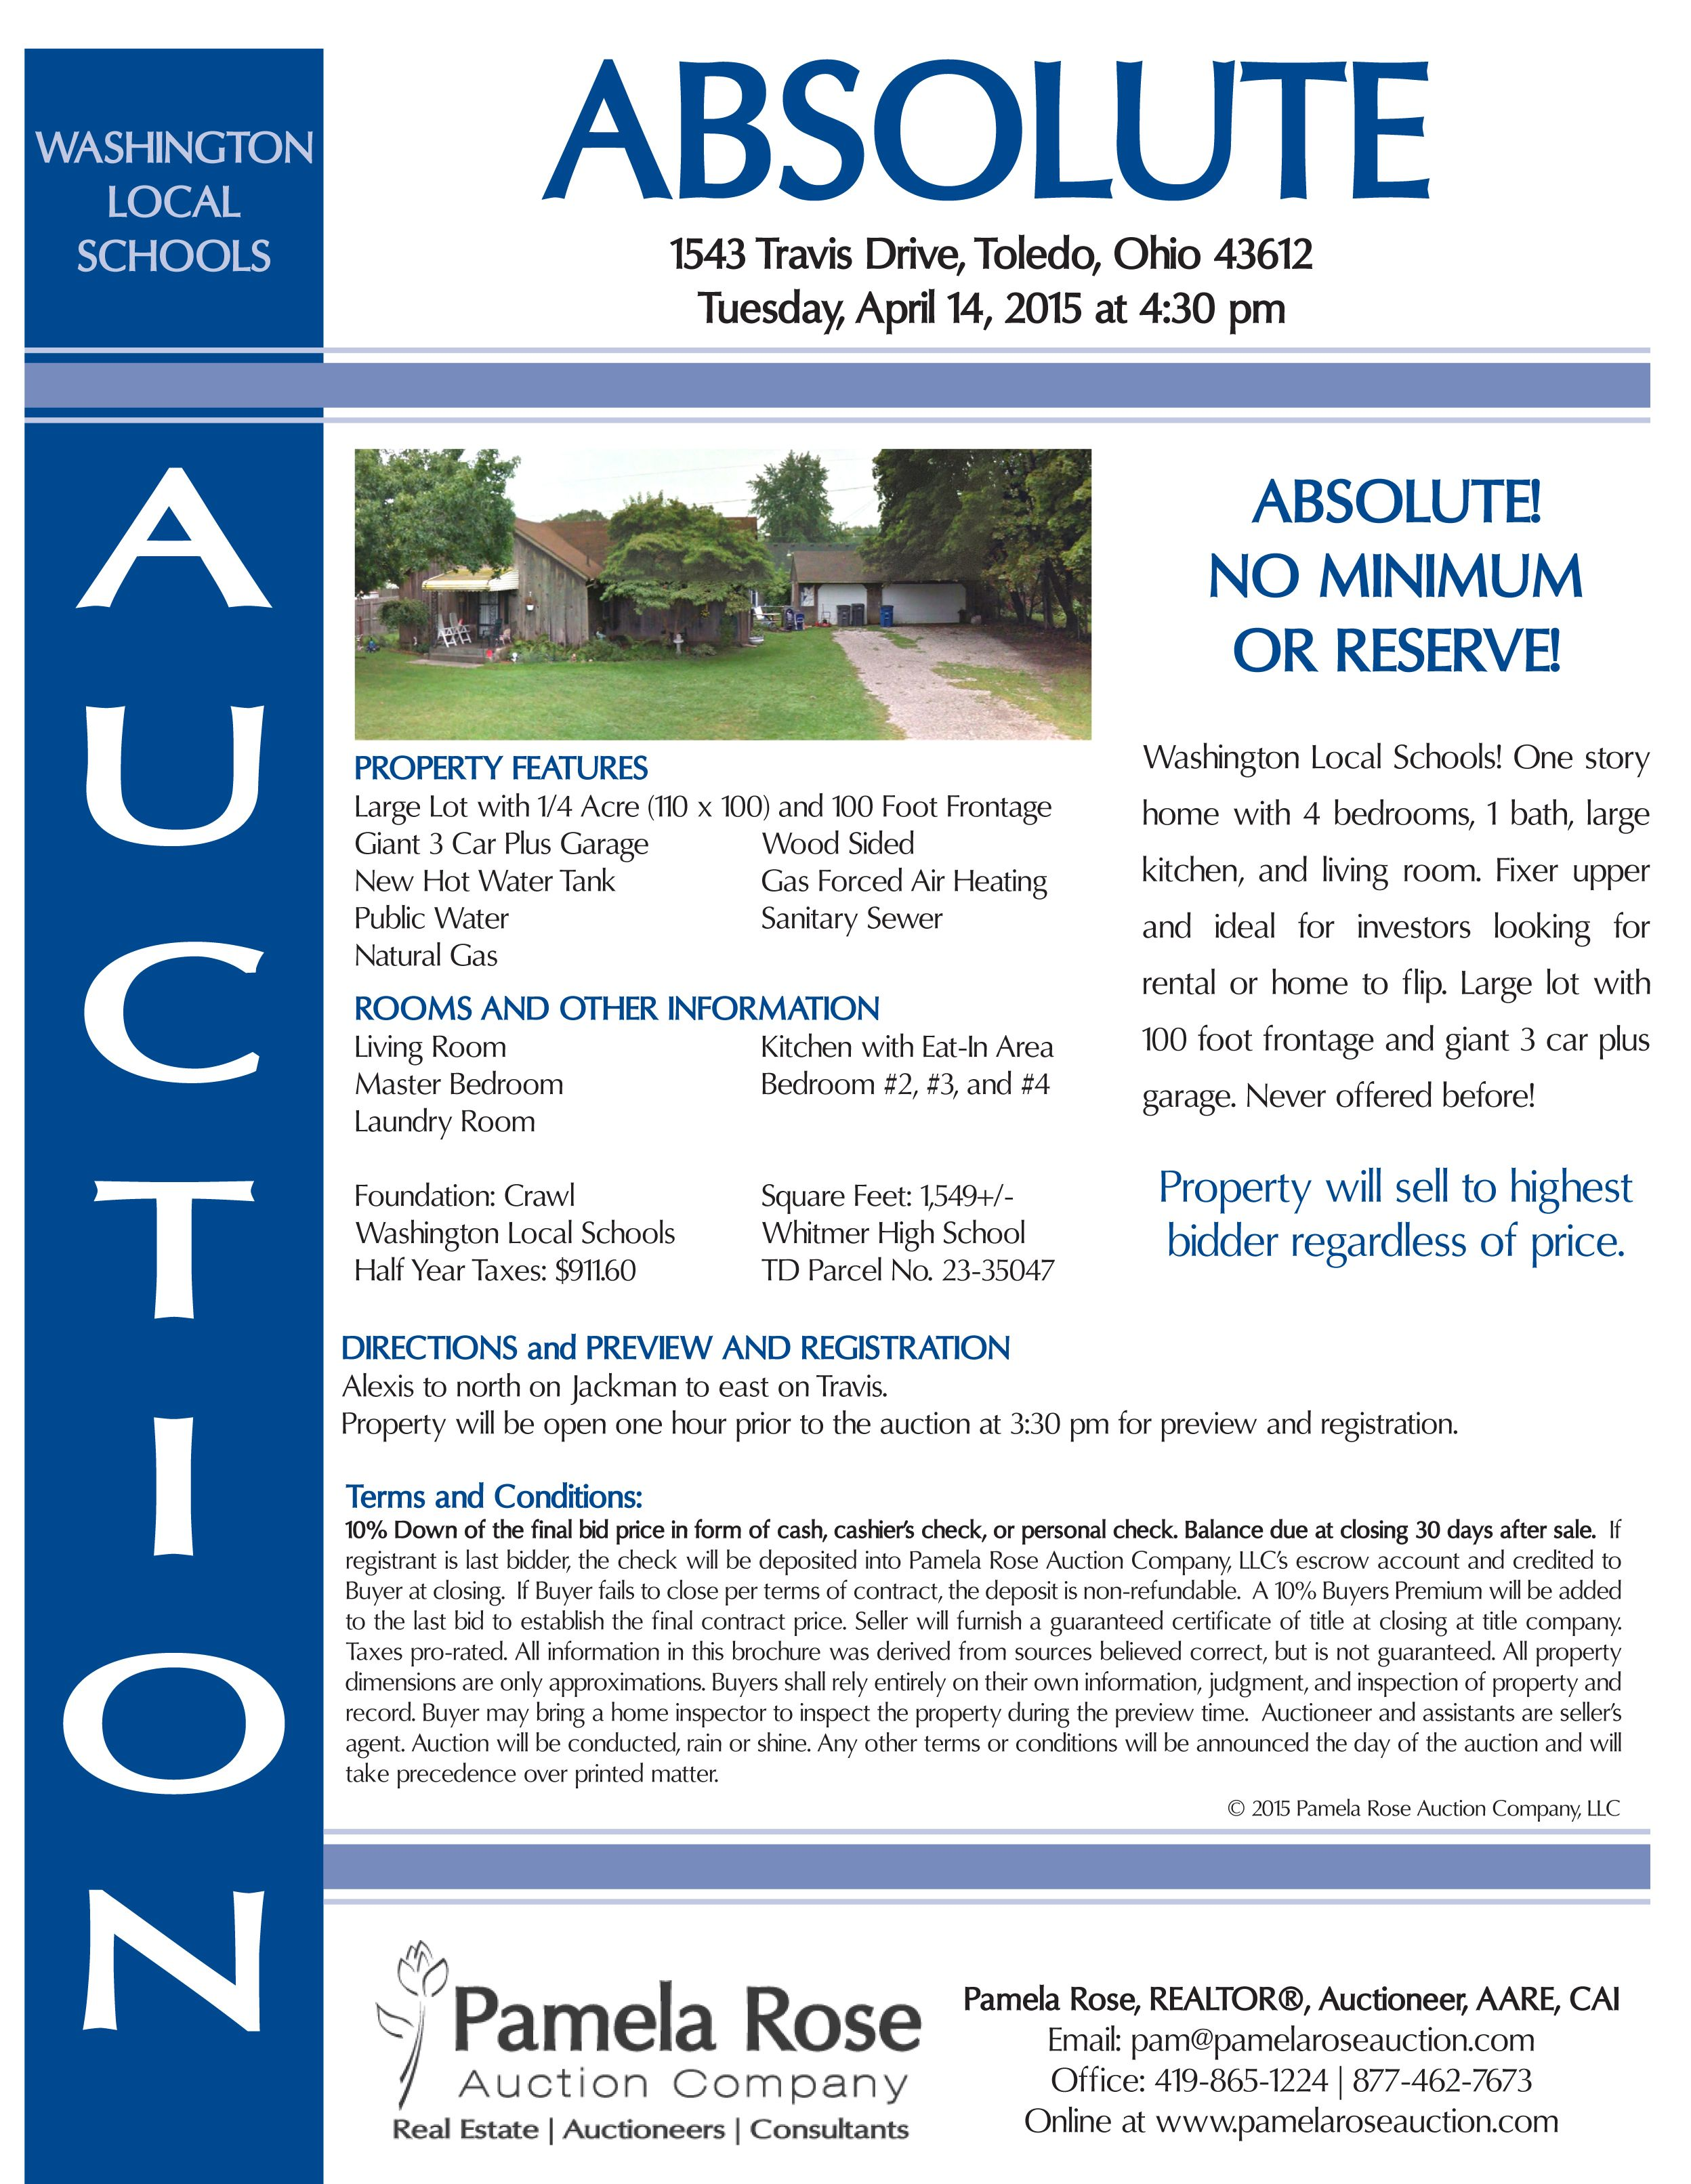 Absolute auction in washington local at 1543 travis drive